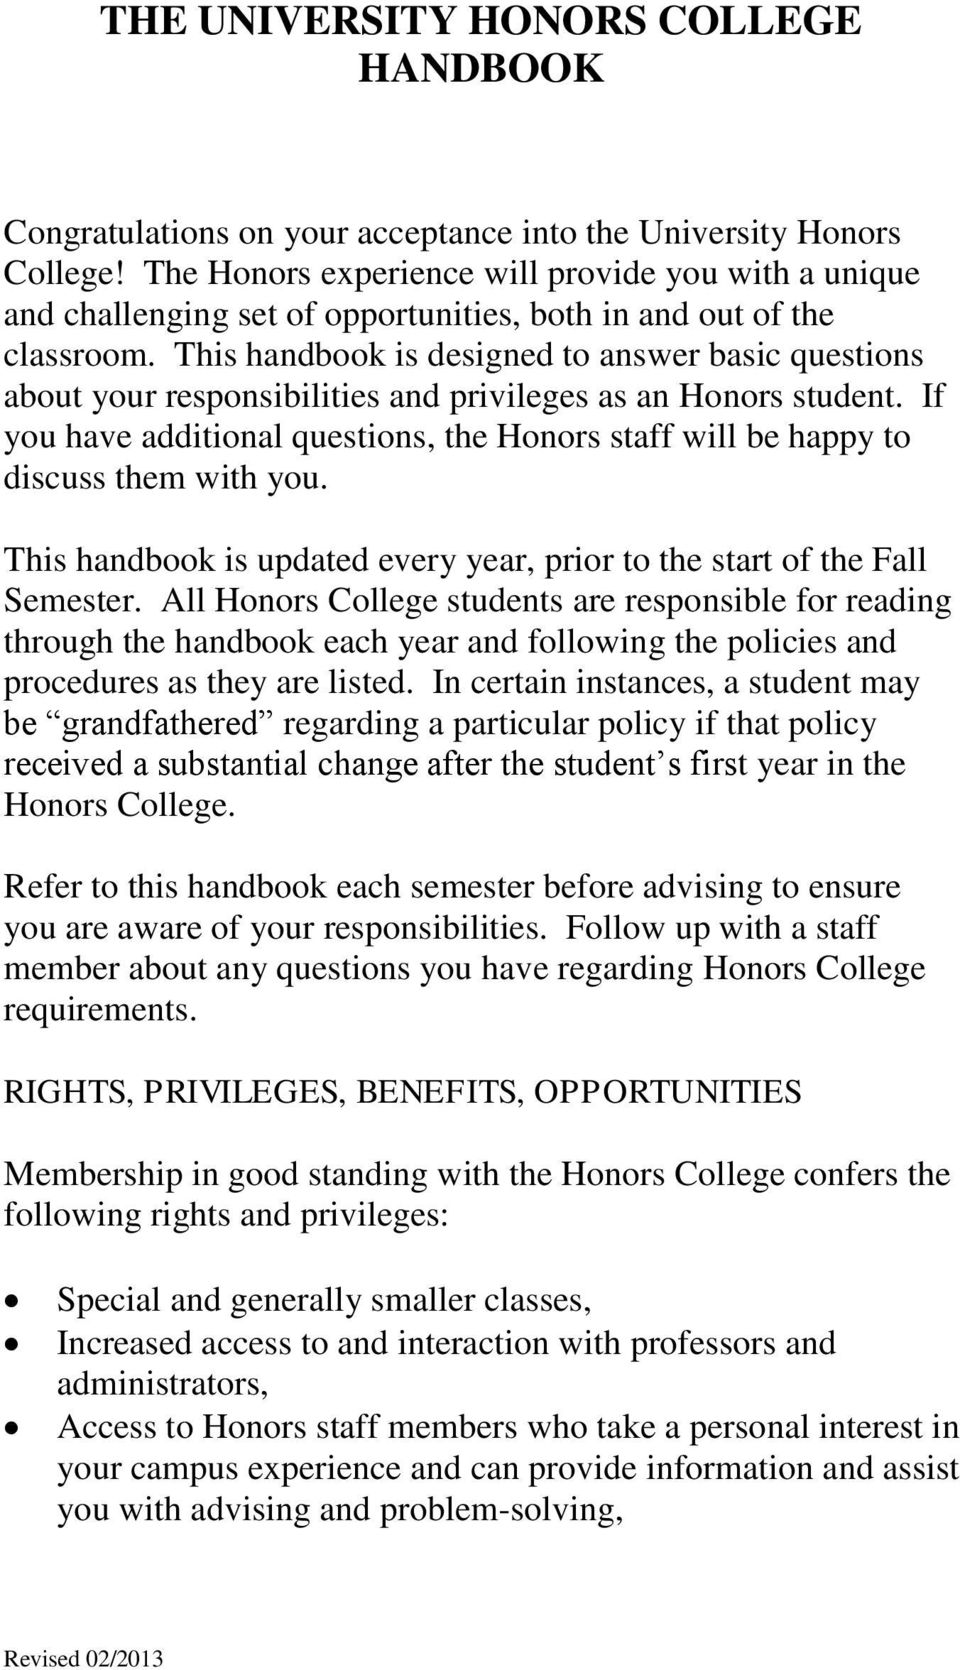 This handbook is designed to answer basic questions about your responsibilities and privileges as an Honors student.